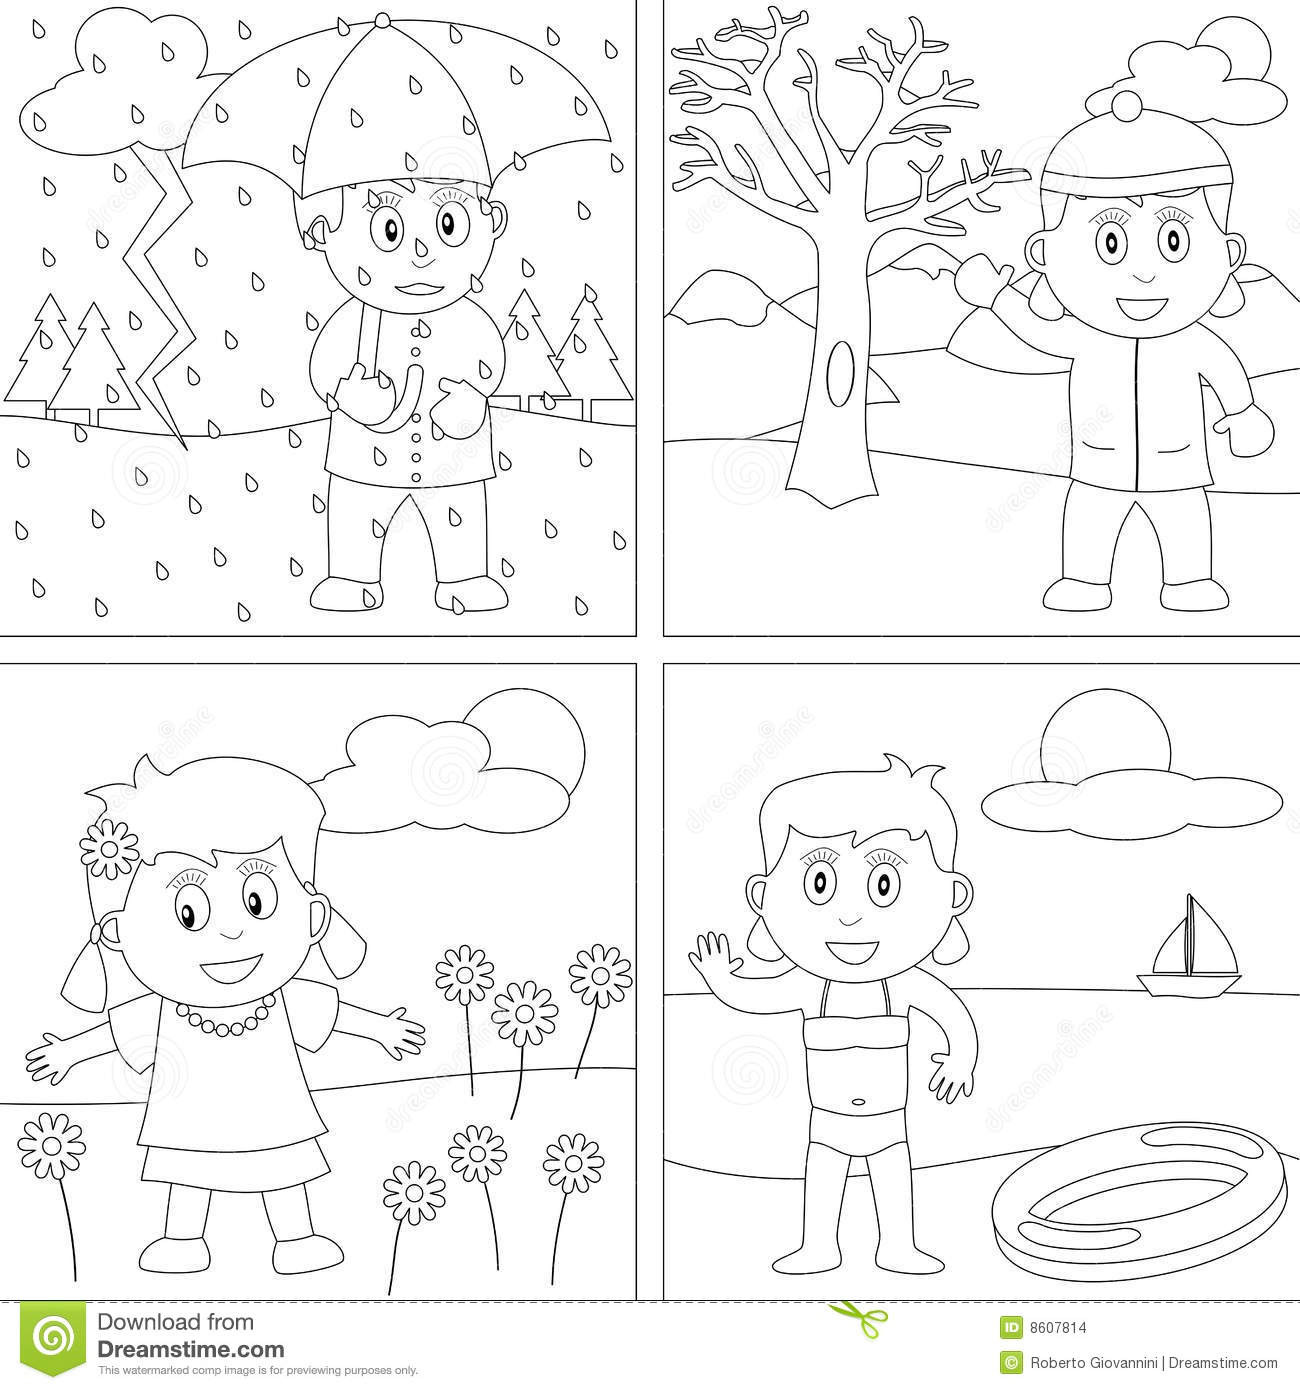 Seasons Coloring Pages  8 Best of Free Printable Winter Clothes Worksheet